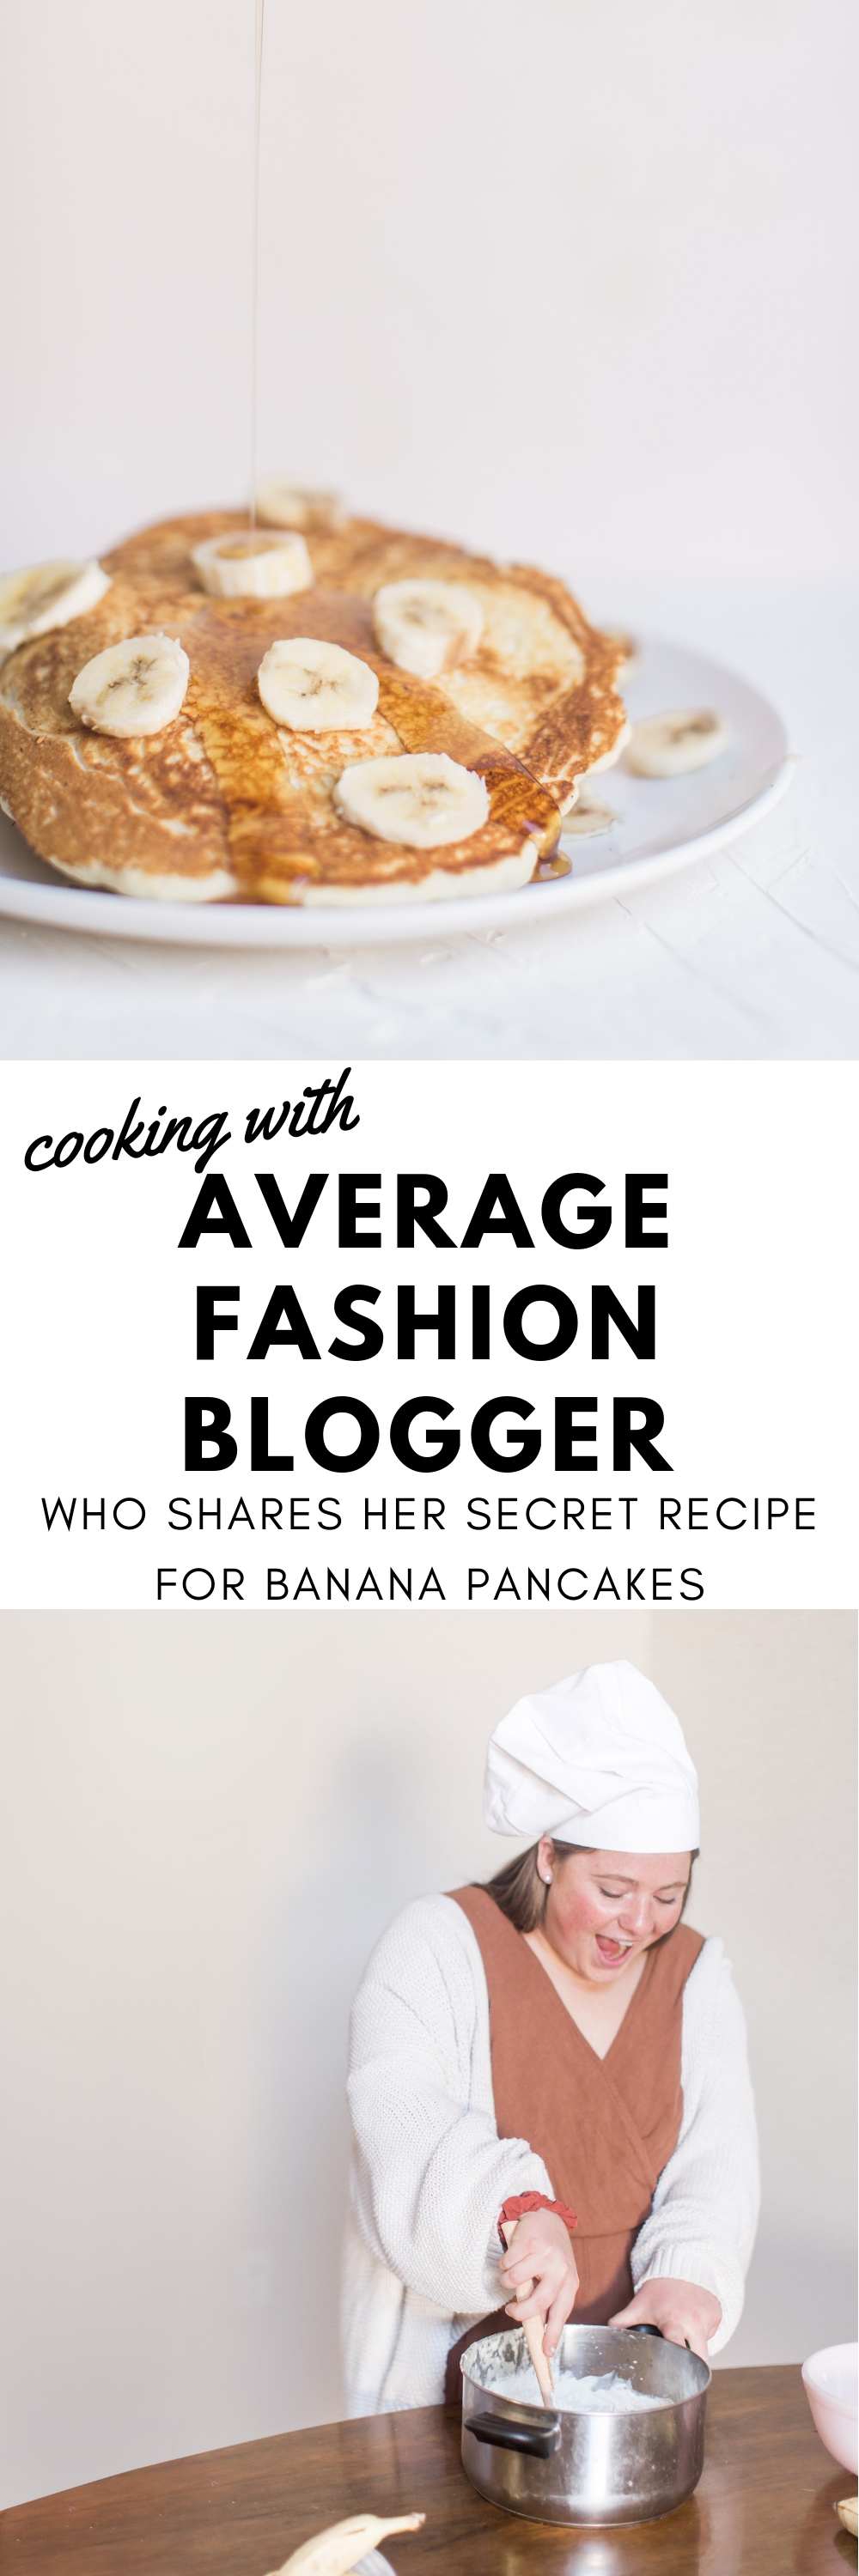 cooking with average fashion blogger